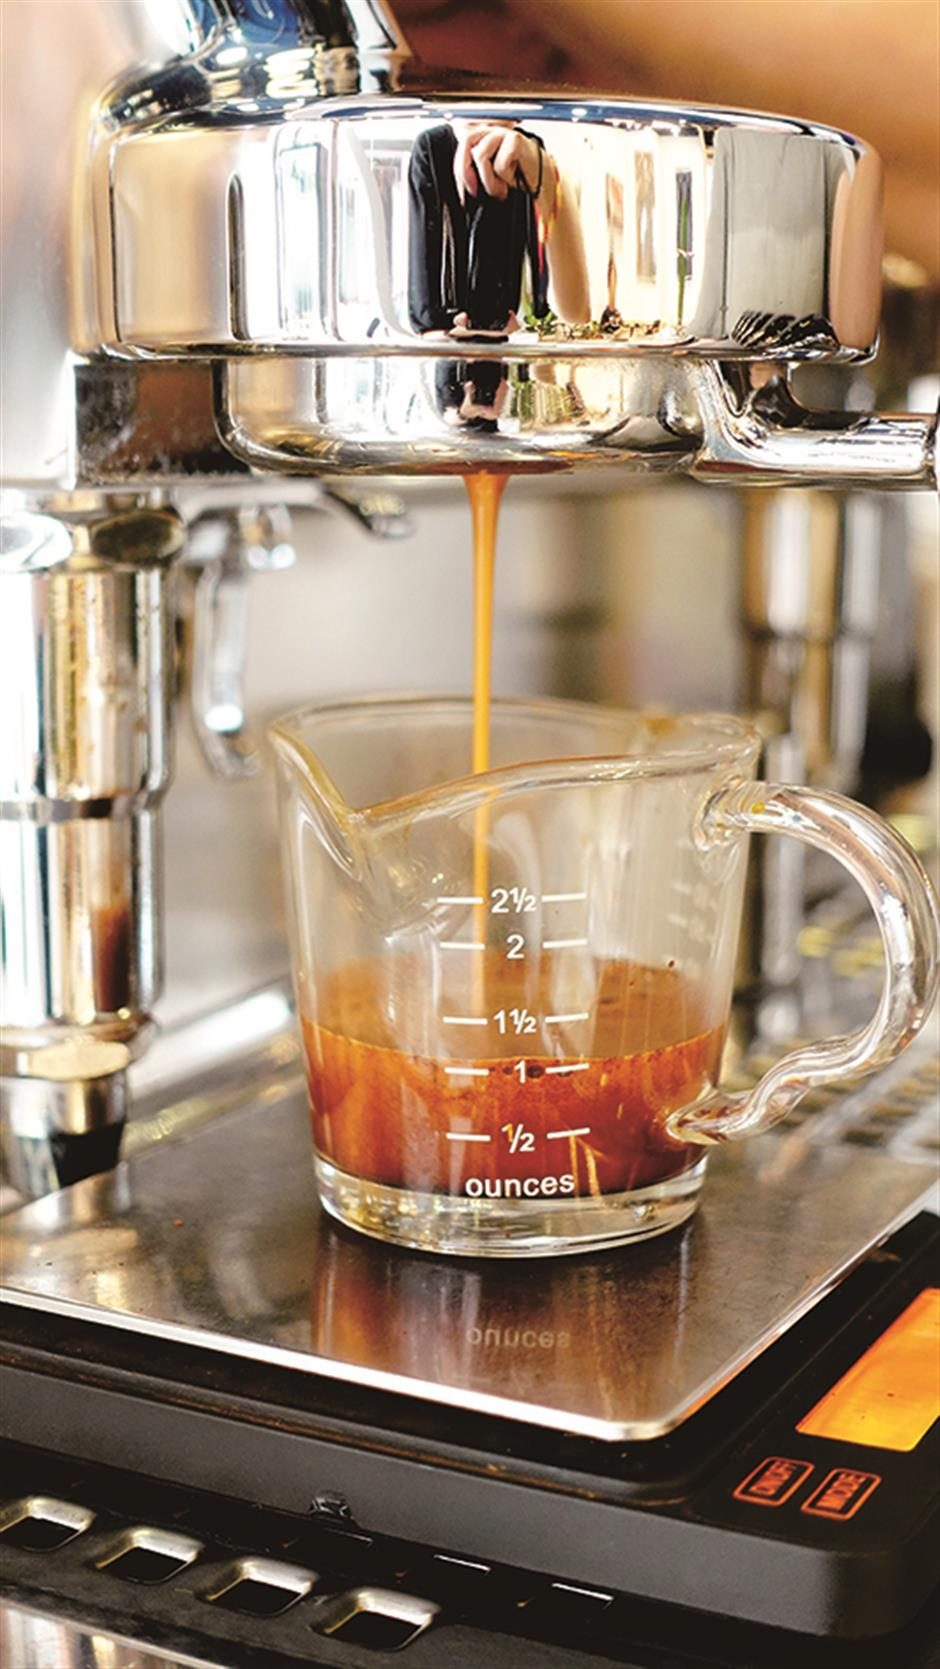 City cafes blend more than just a taste of coffee